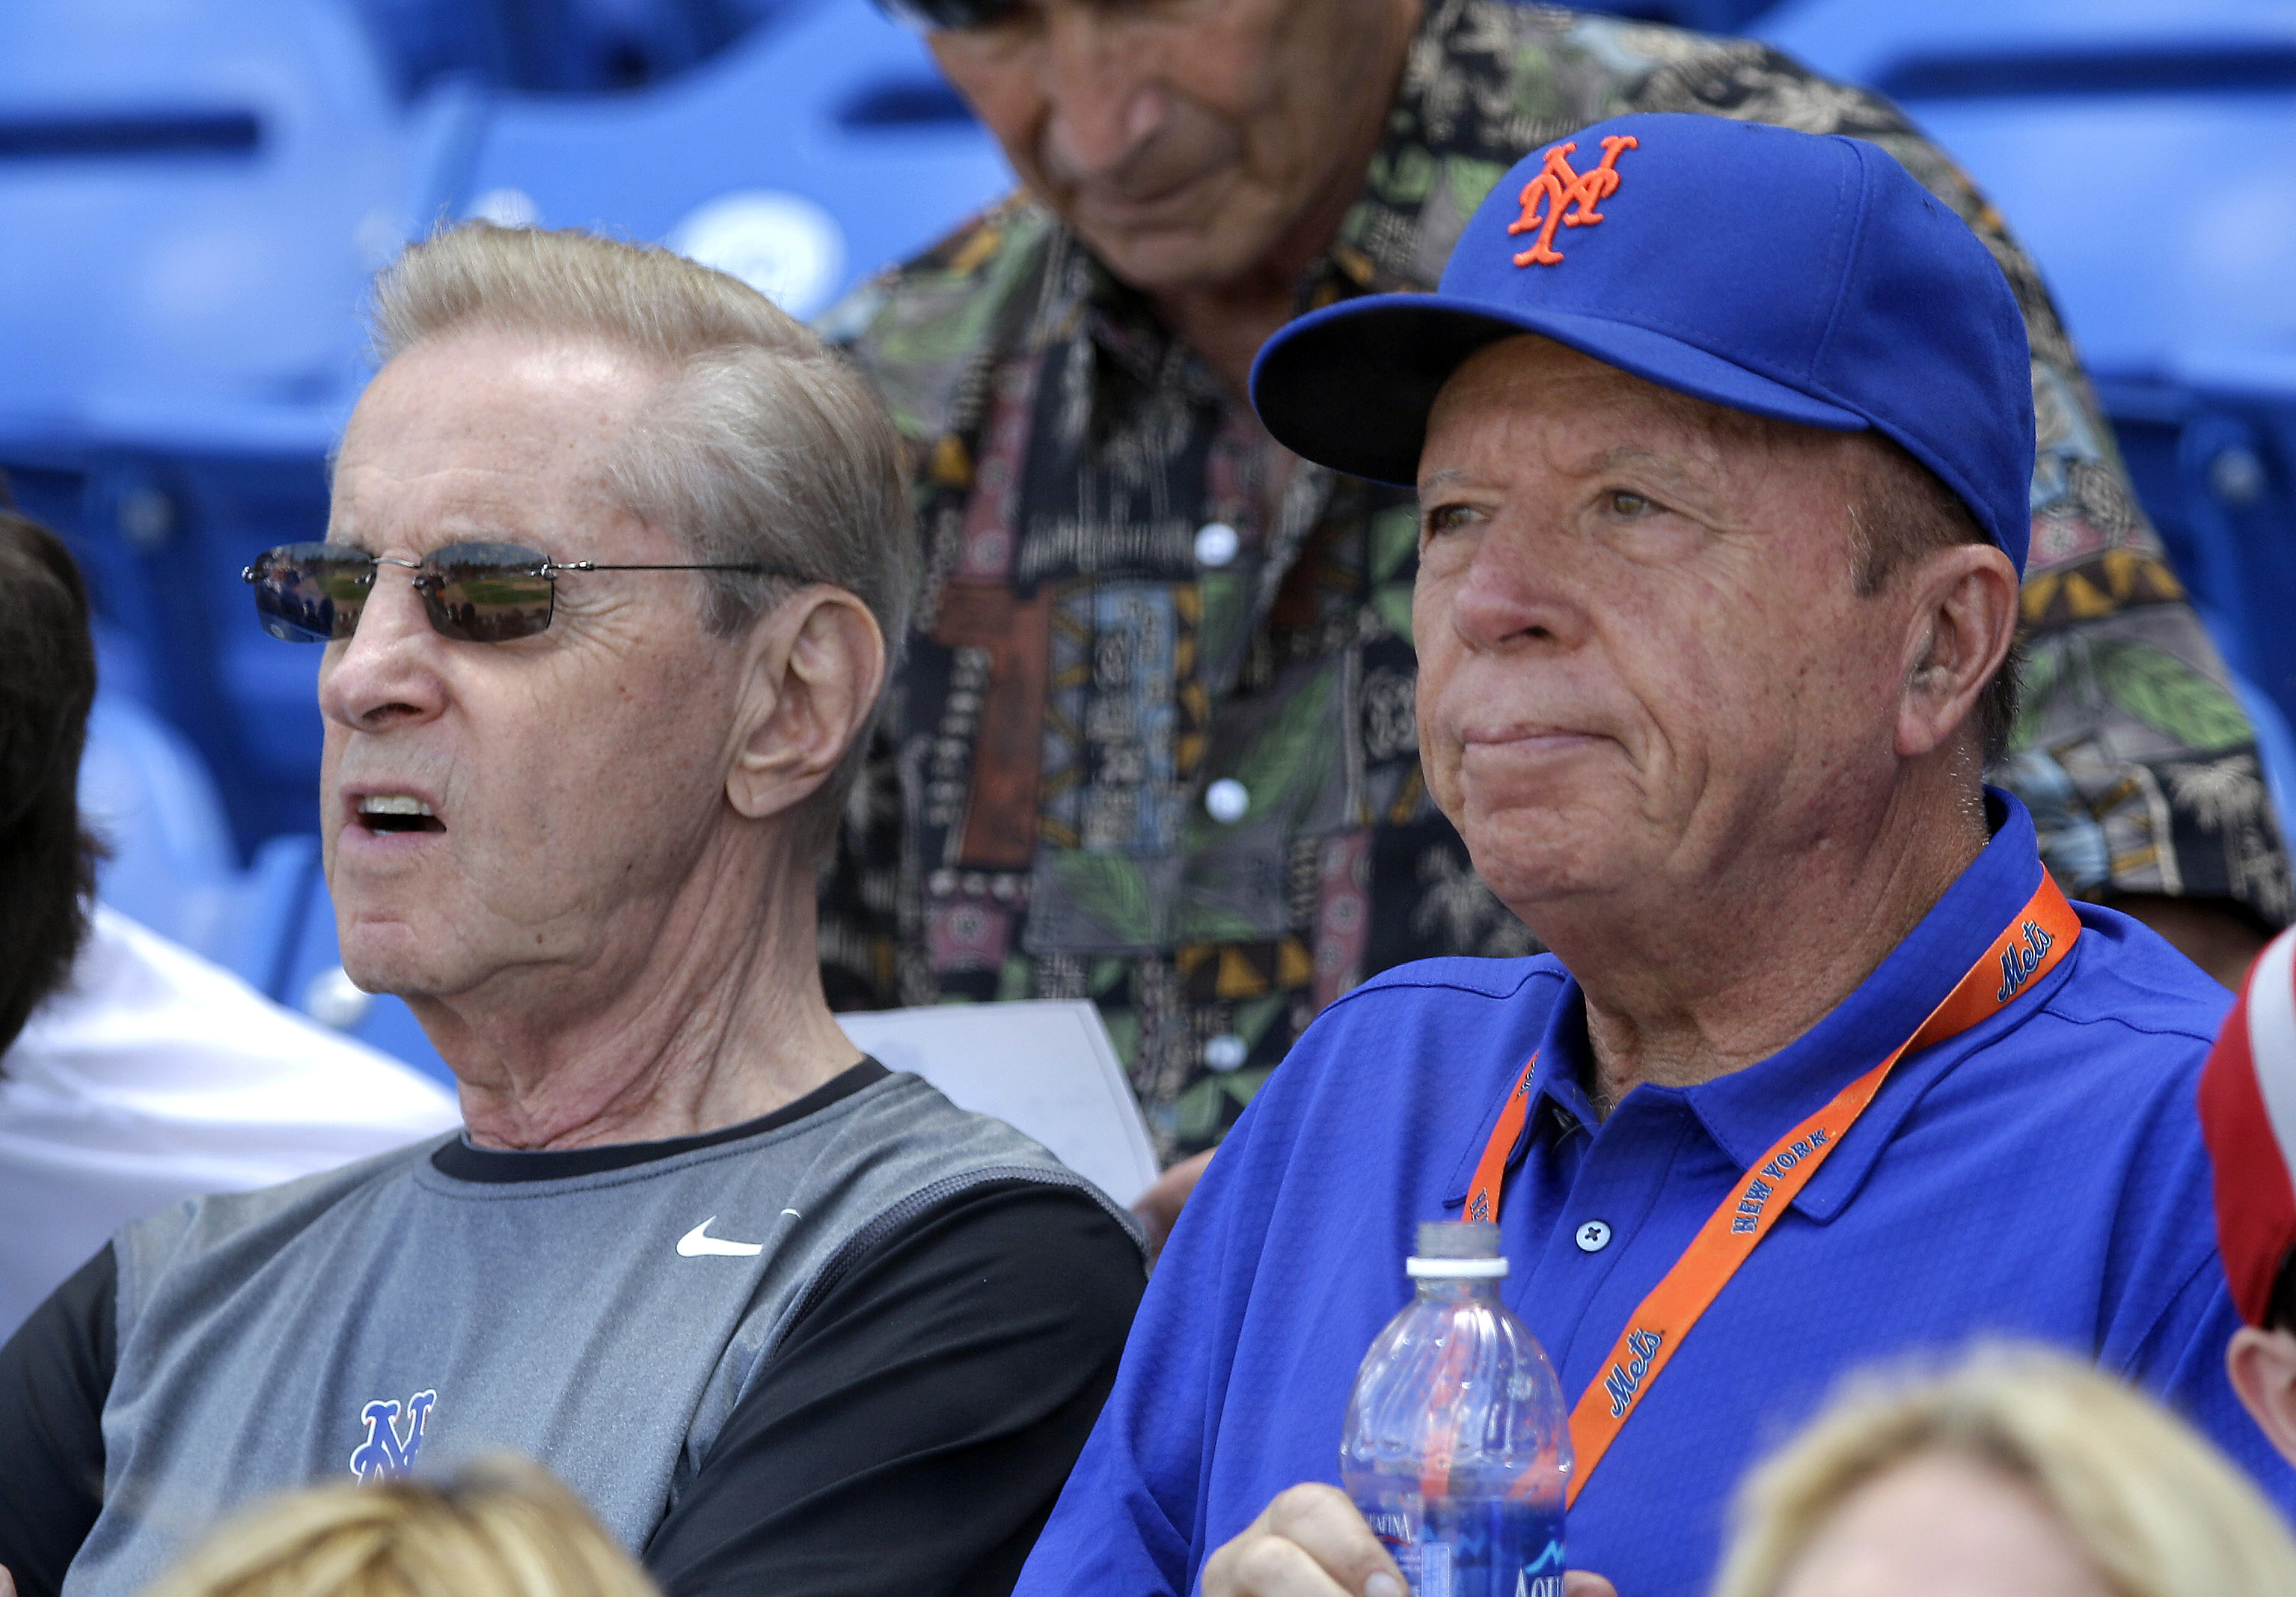 FILE- In this March 22, 2012, file photo, New York Mets owners Fred Wilpon, left, and Saul Katz watch a spring training baseball game between the Mets and the Houston Astros in Port St. Lucie, Fla. The Mets' primary owners and their affiliates owe at most